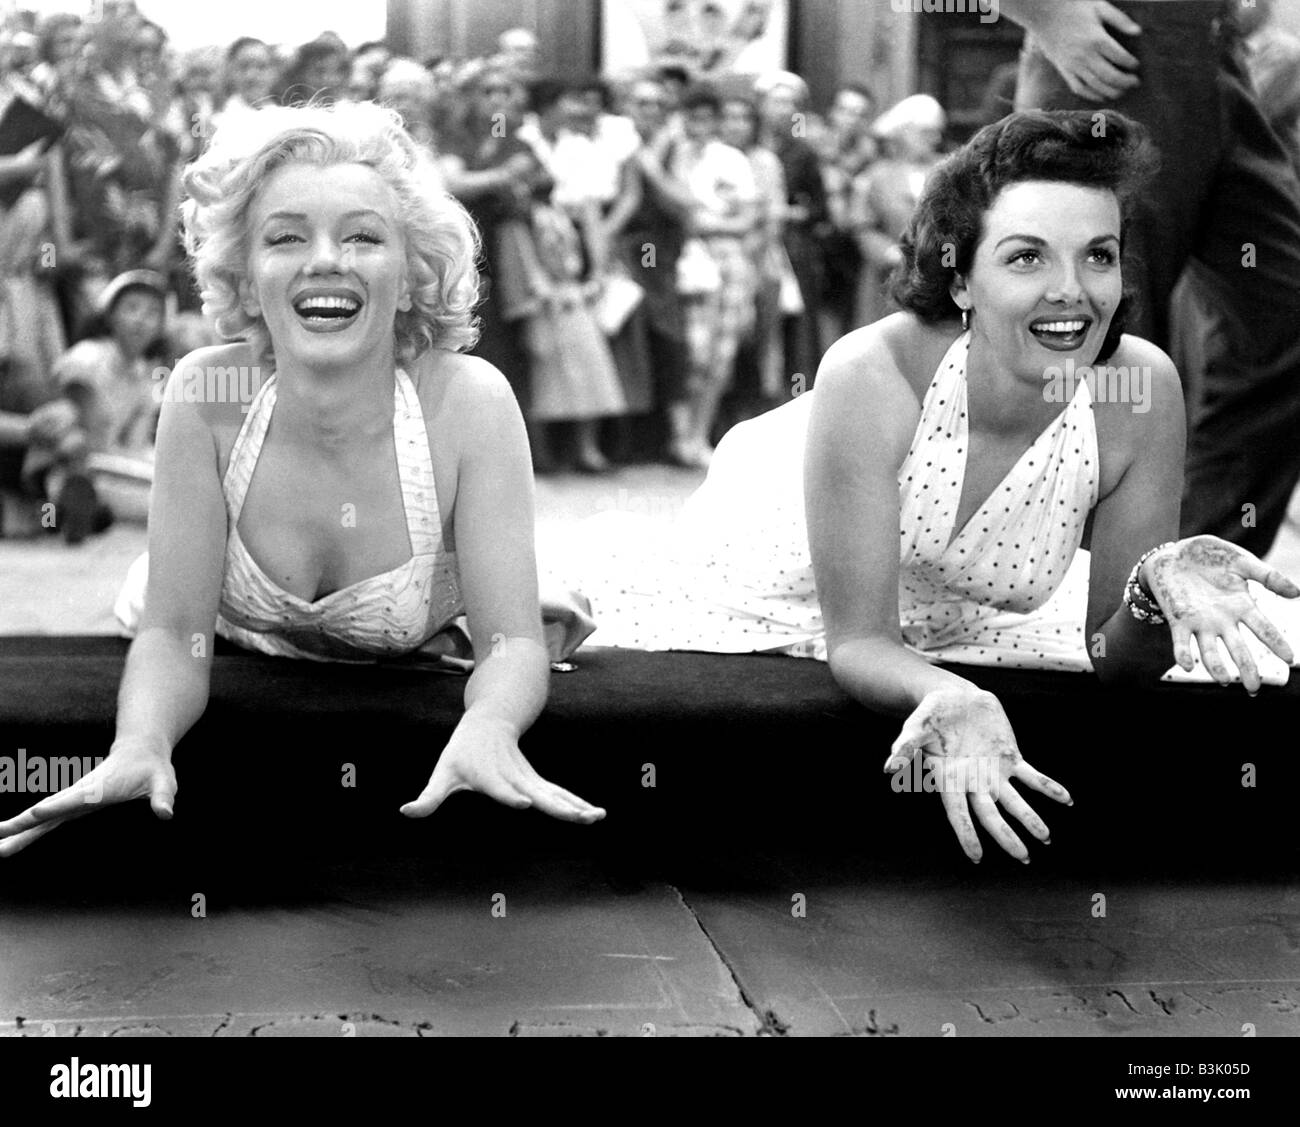 MARILYN MONROE a sinistra e Jane Russell lasciare loro handprints a Graumann's Chinese Theatre Hollywood nel Immagini Stock